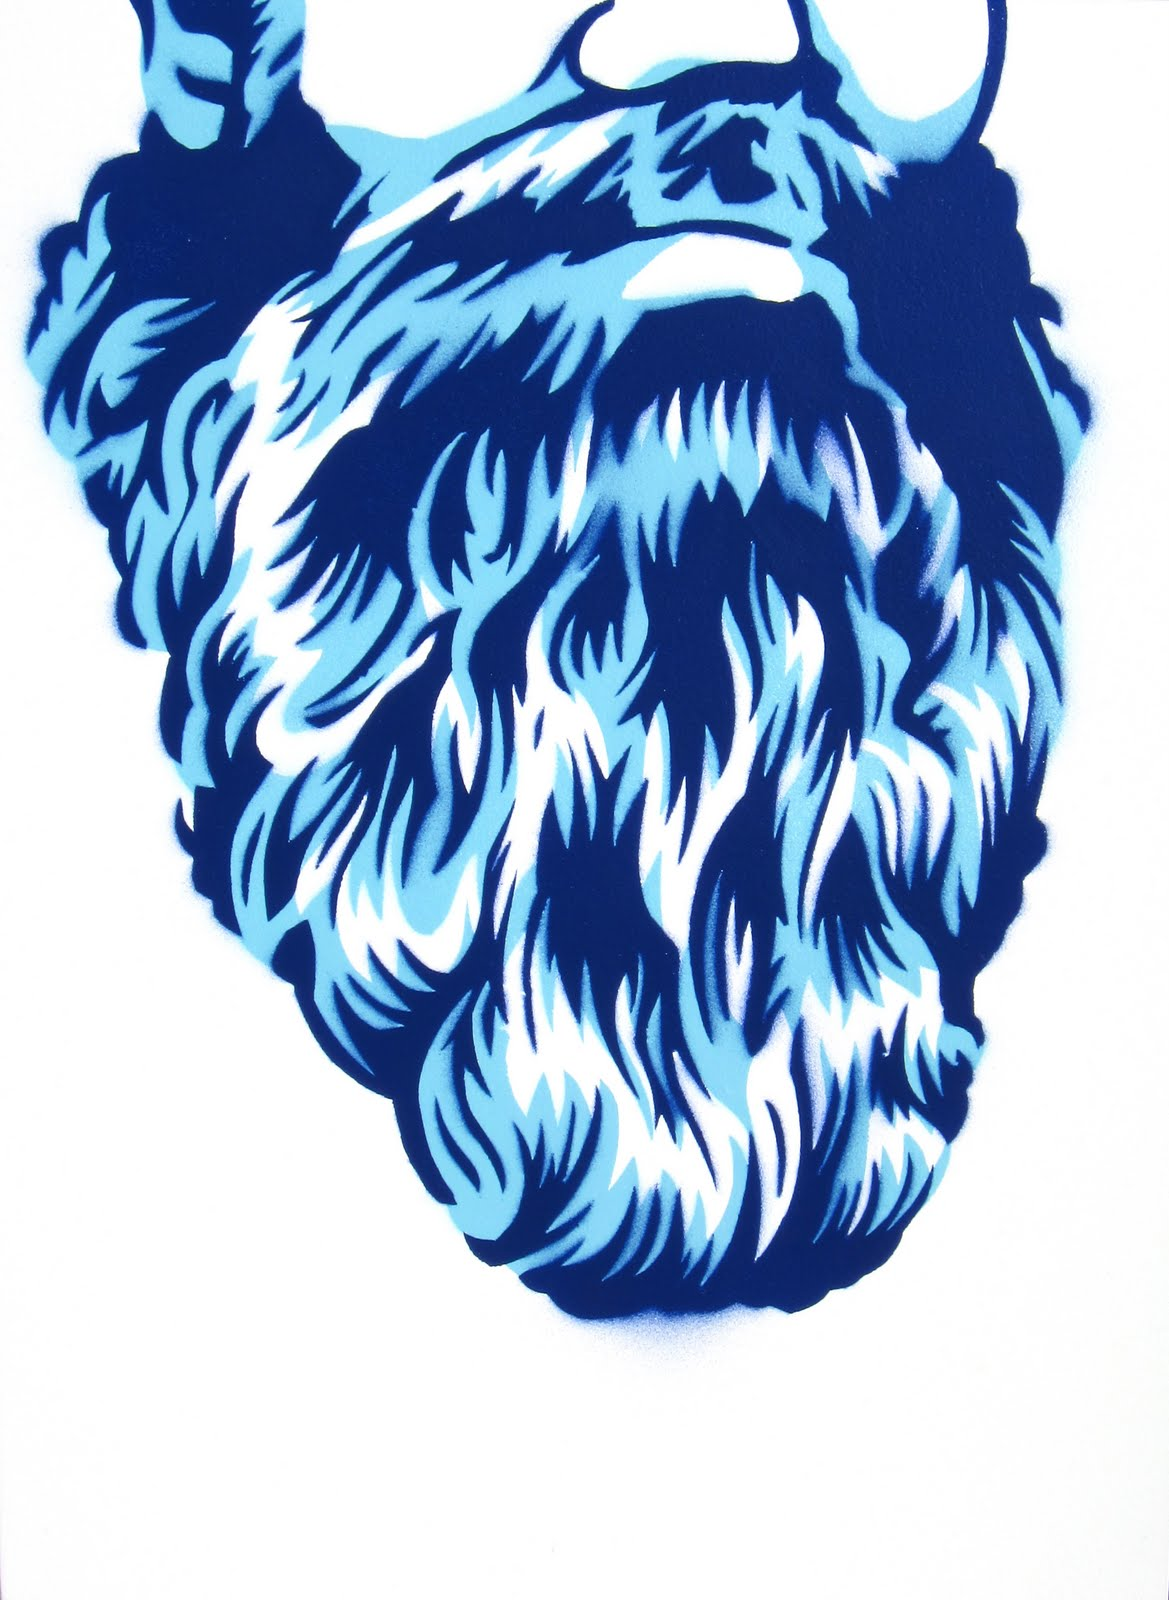 Beard Stencil Posted by james dodd at 6:55